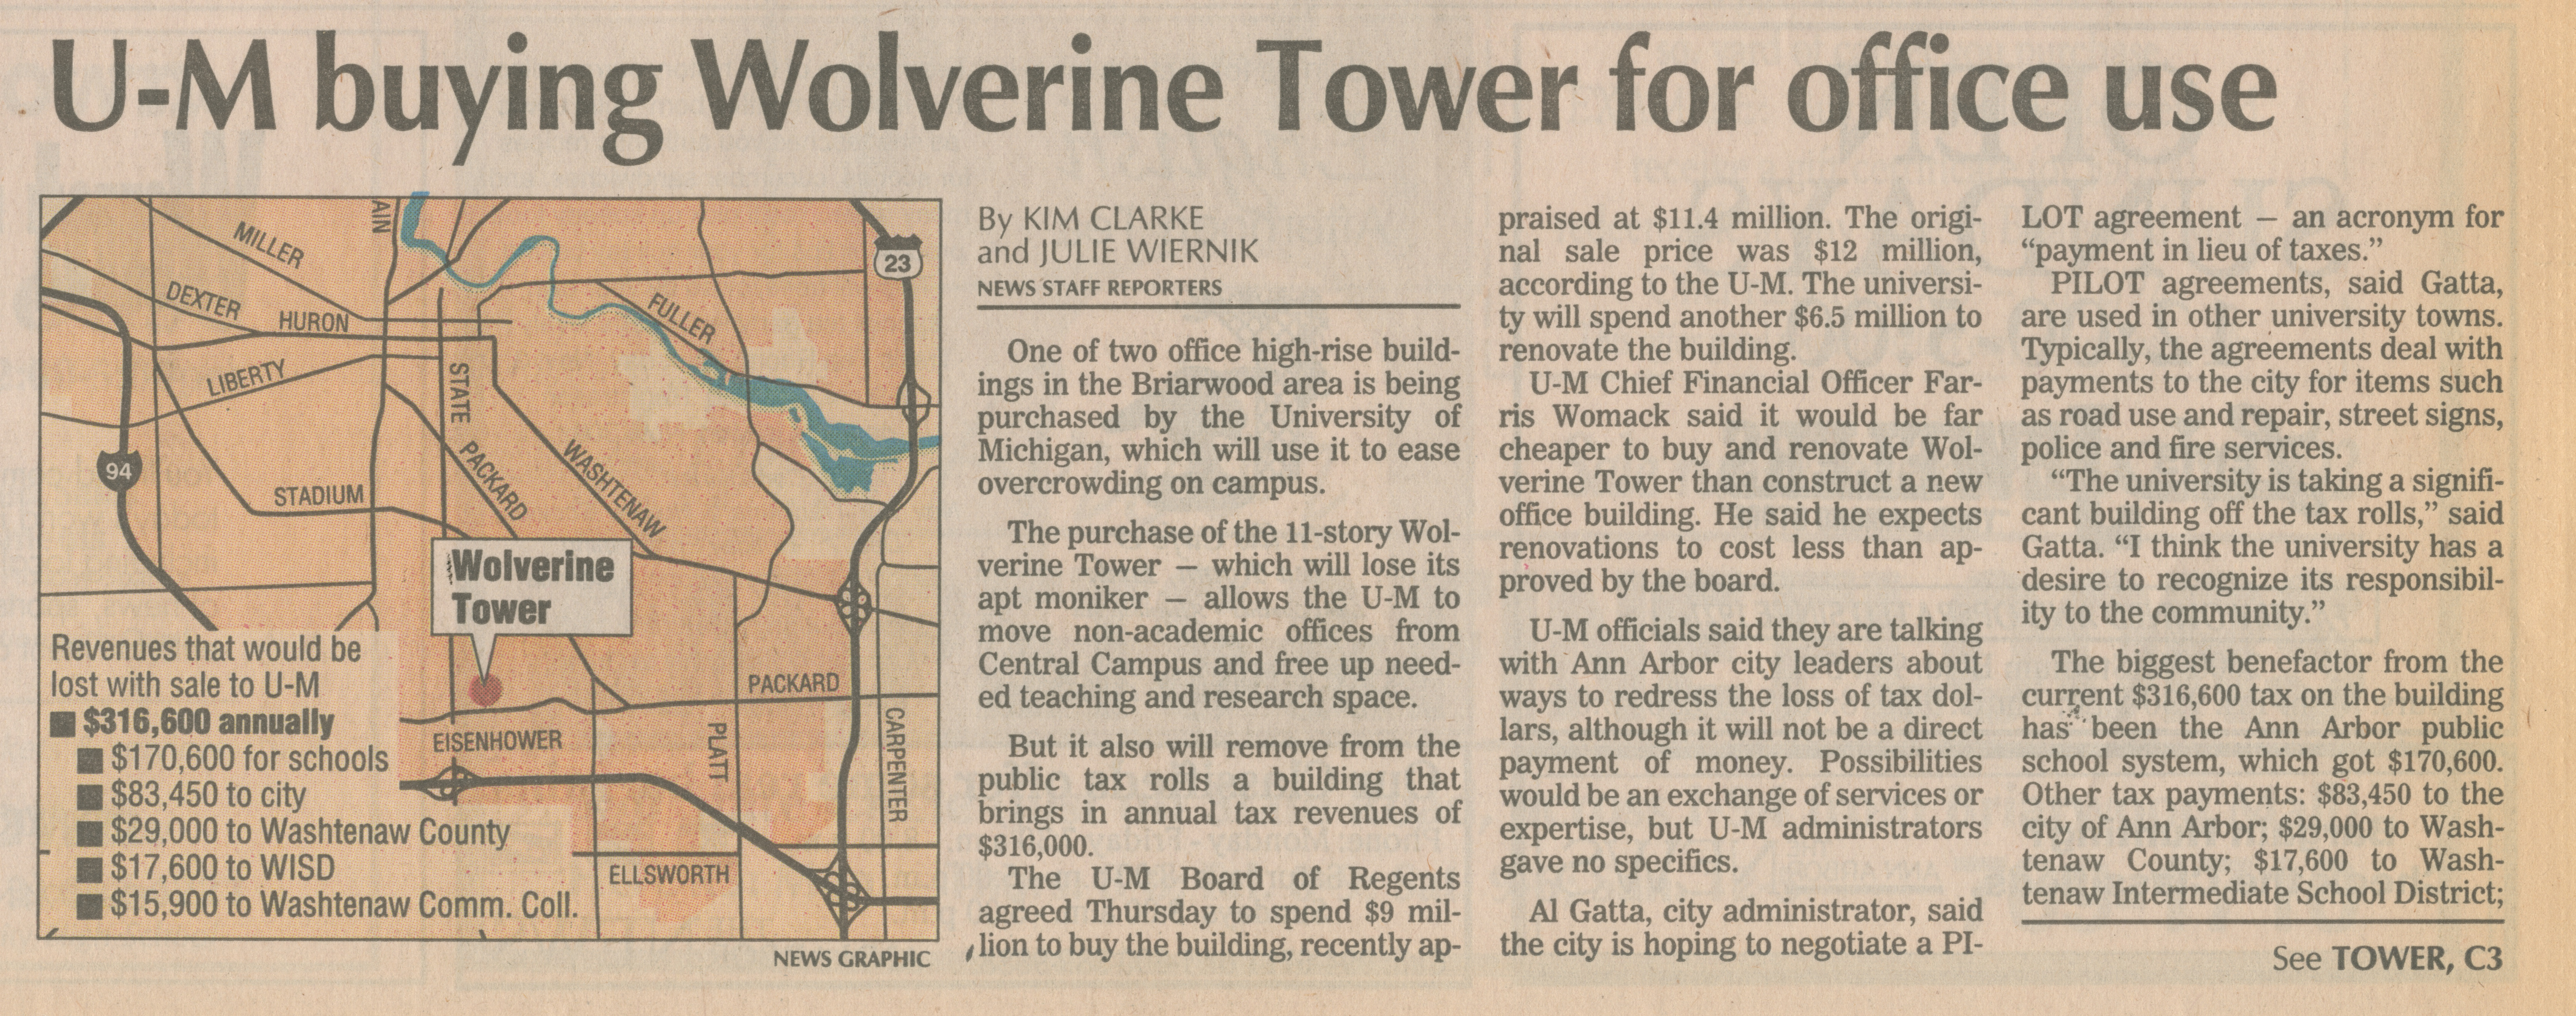 U-M buying Wolverine Tower for office use image